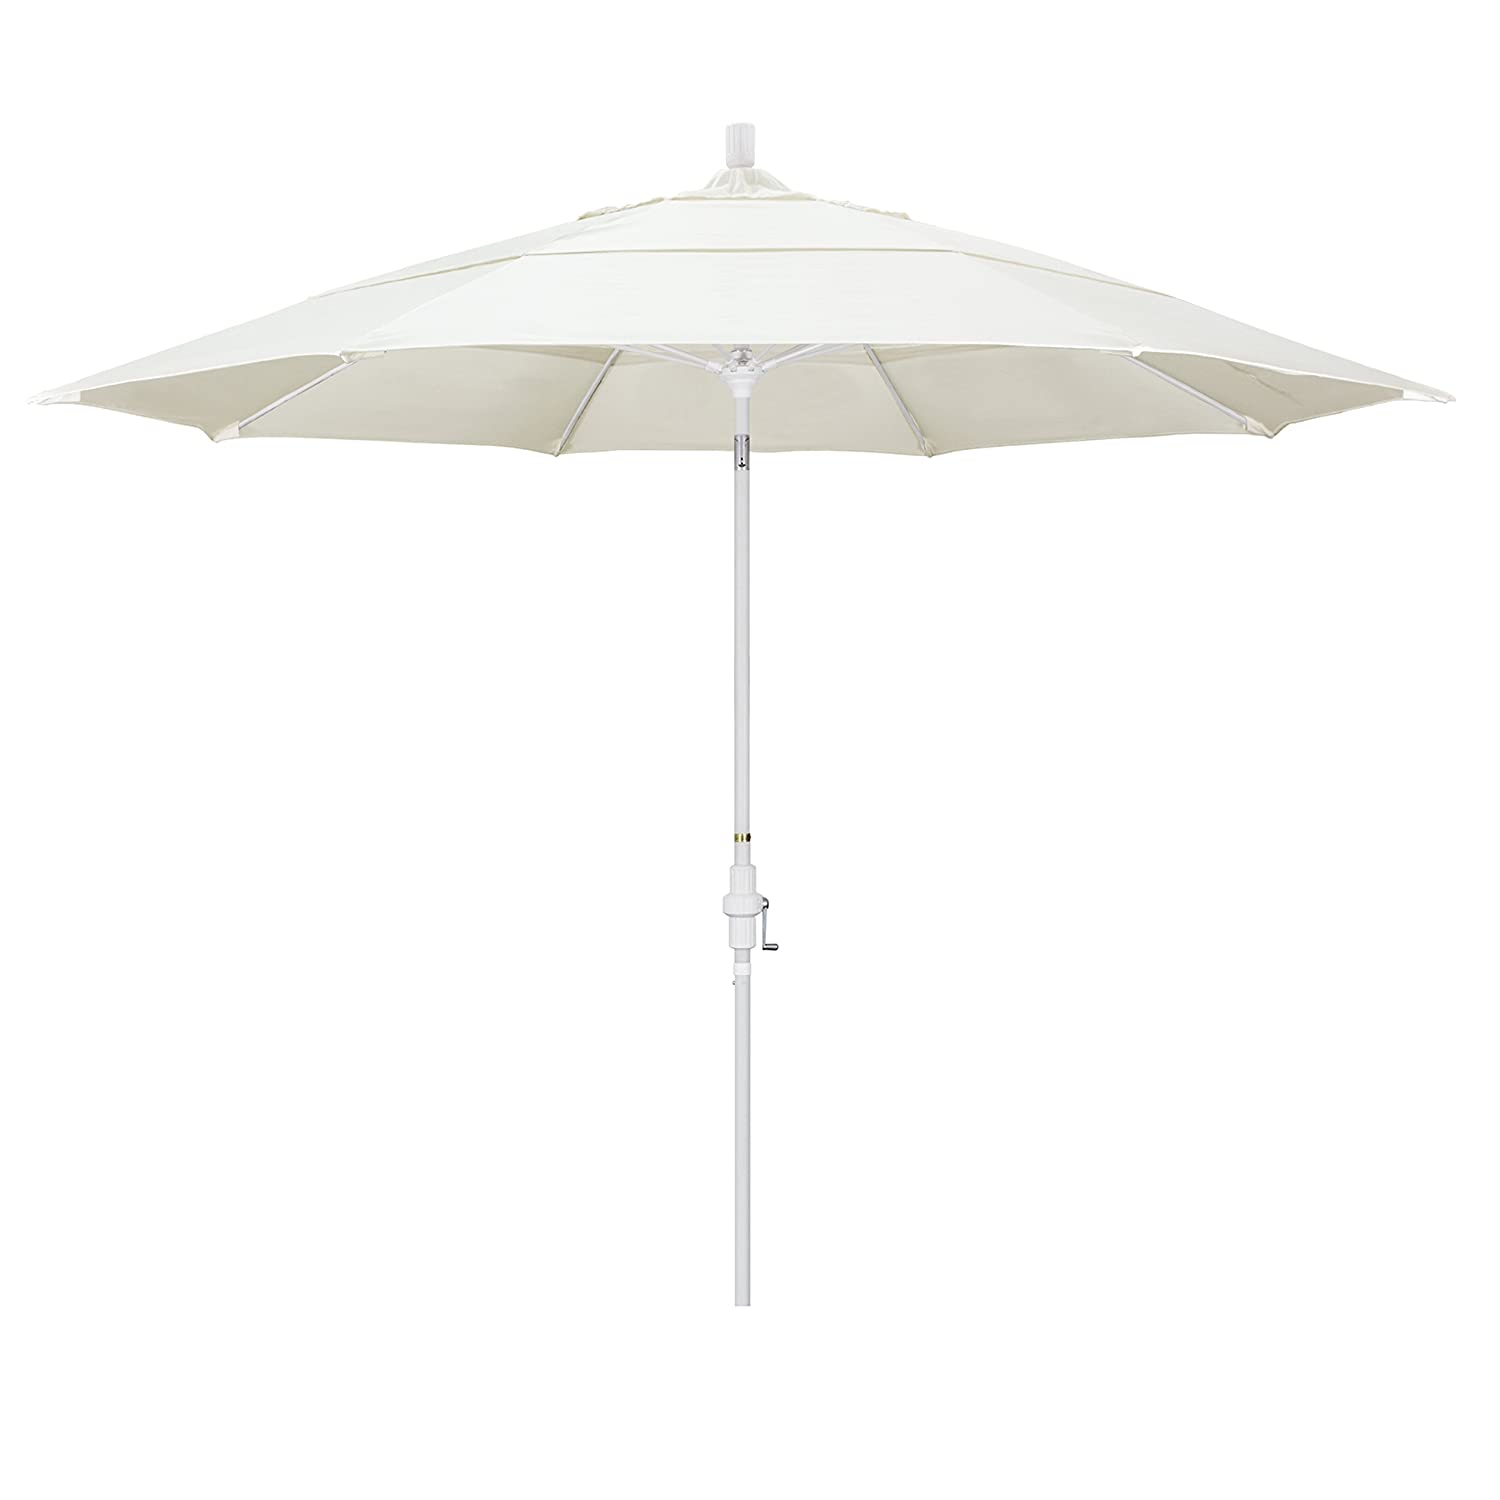 California Umbrella 11 Round Fiberglass Rib Market Umbrella, Crank Lift, Collar Tilt